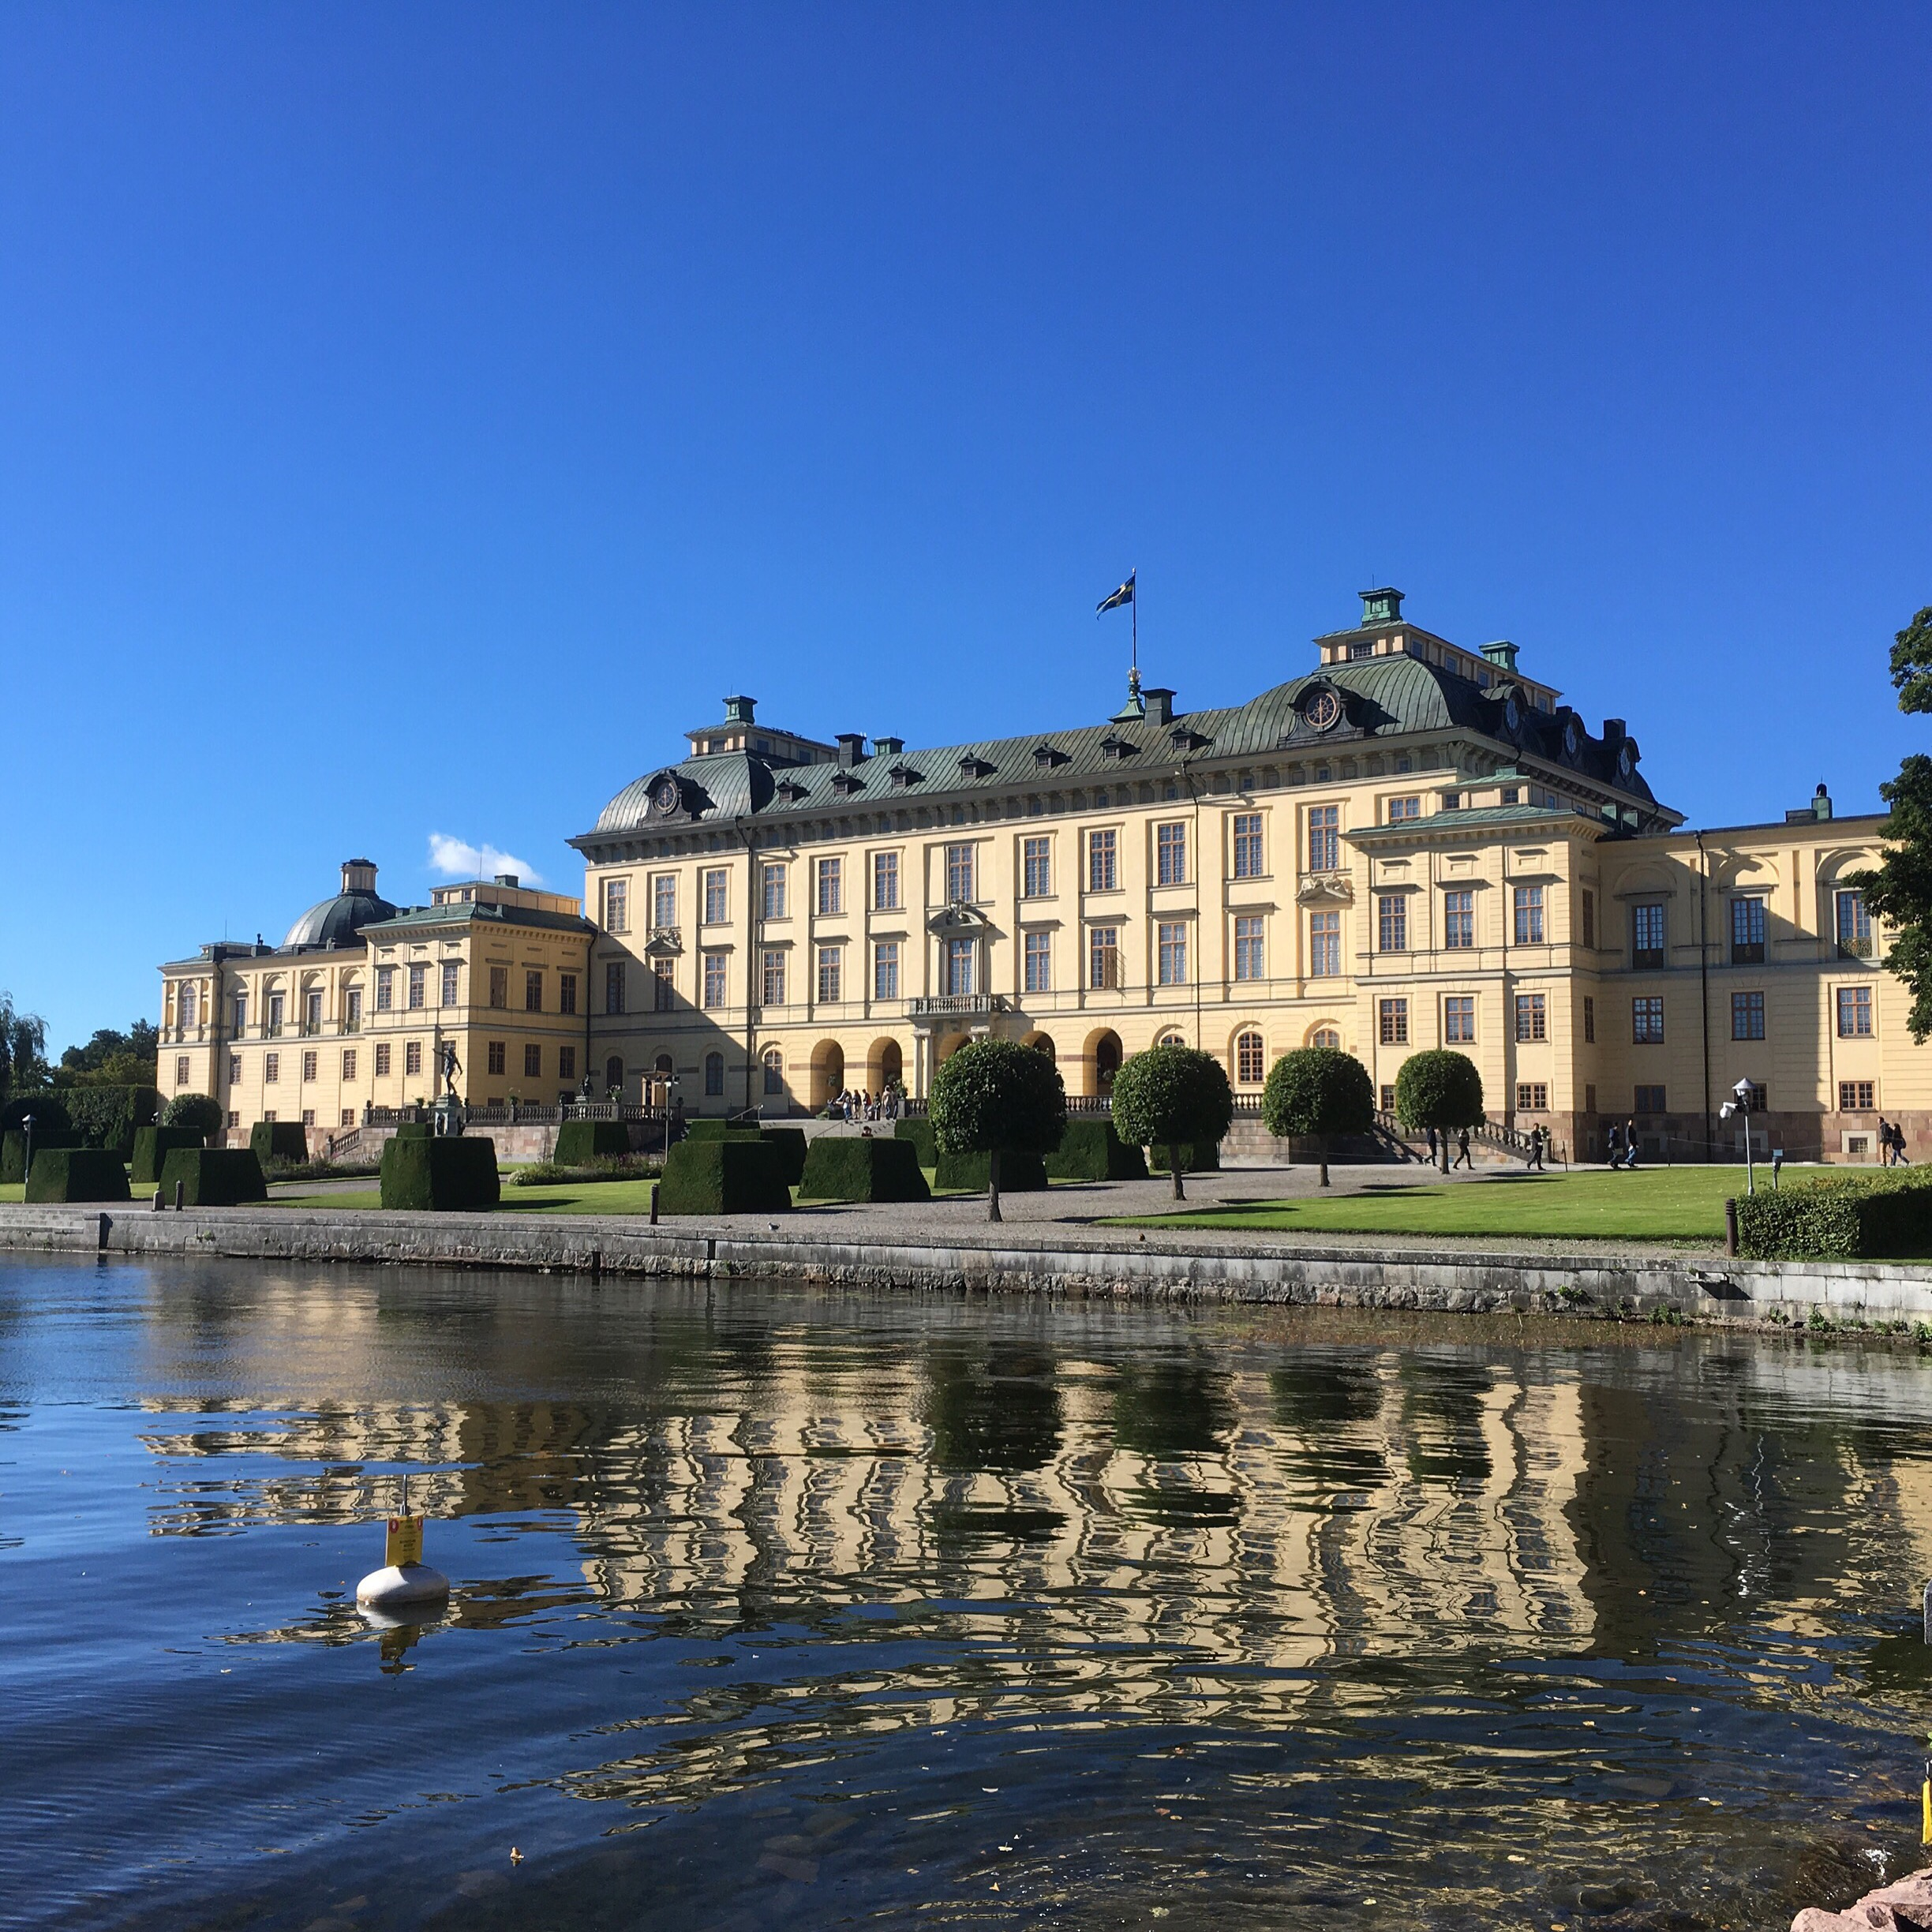 Drottningholm palace from the lakeside.